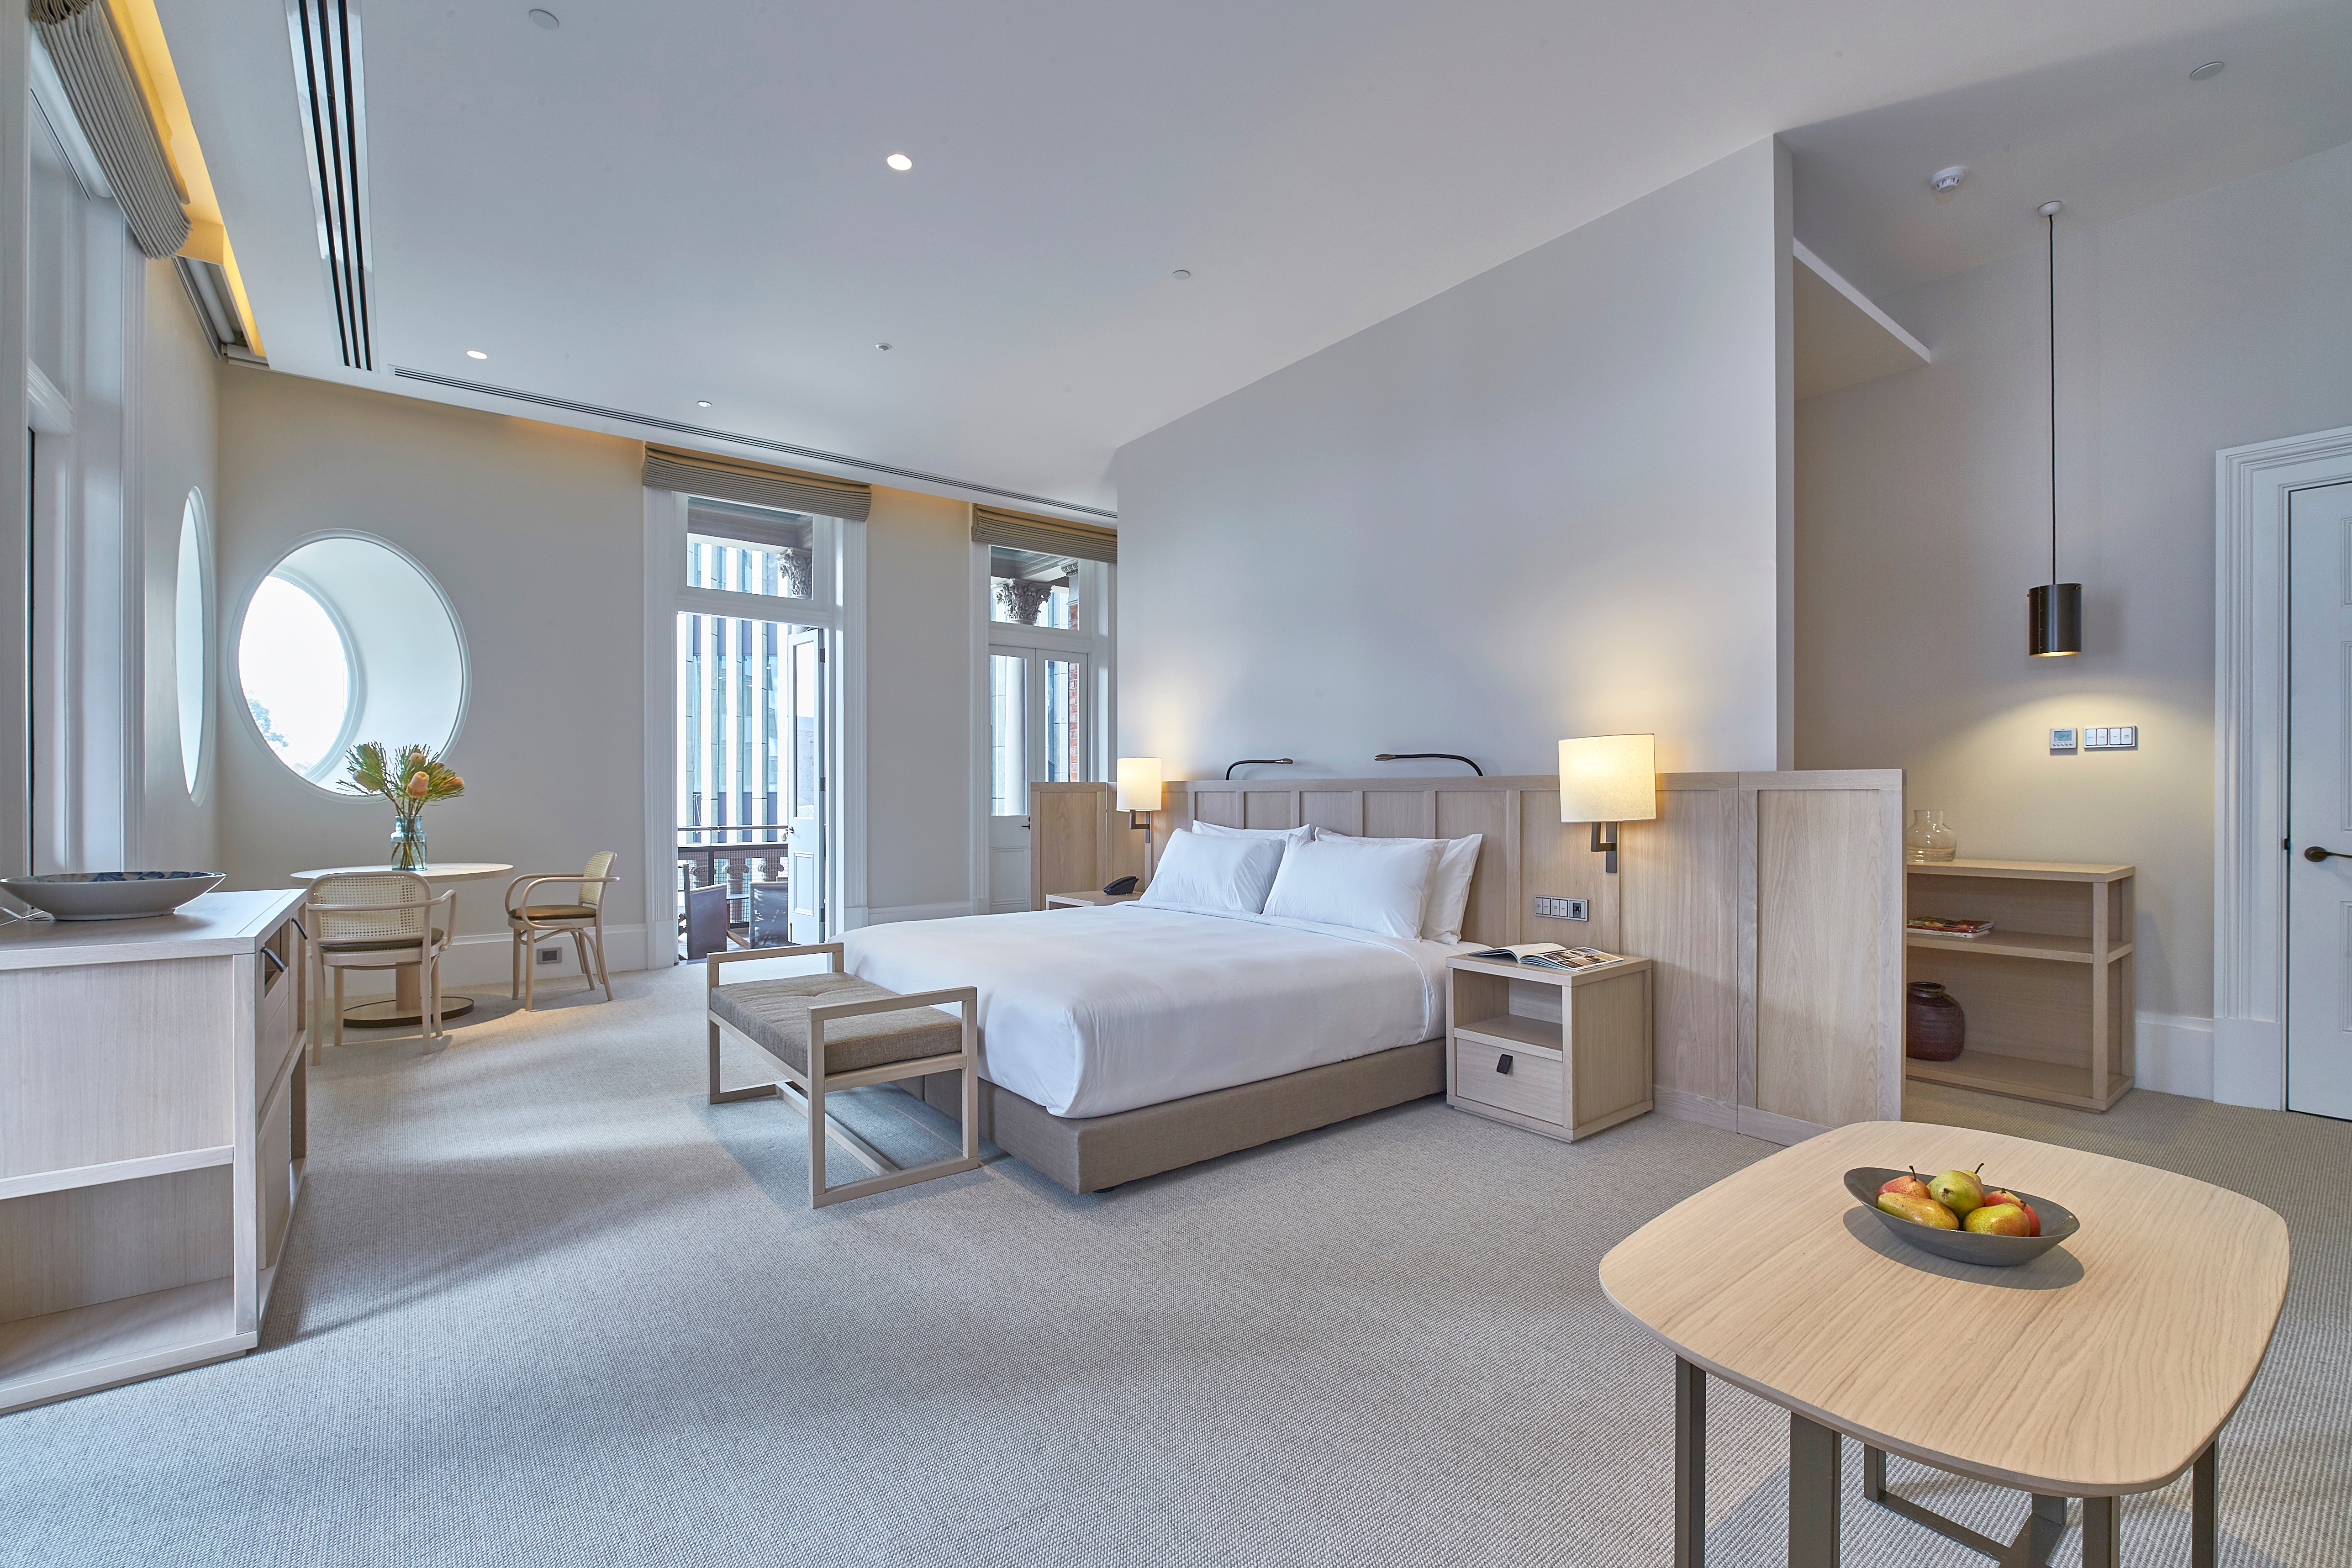 COMO Hotels And Resorts Makes Its Debut In Australia With A New Luxury Hotel Perth